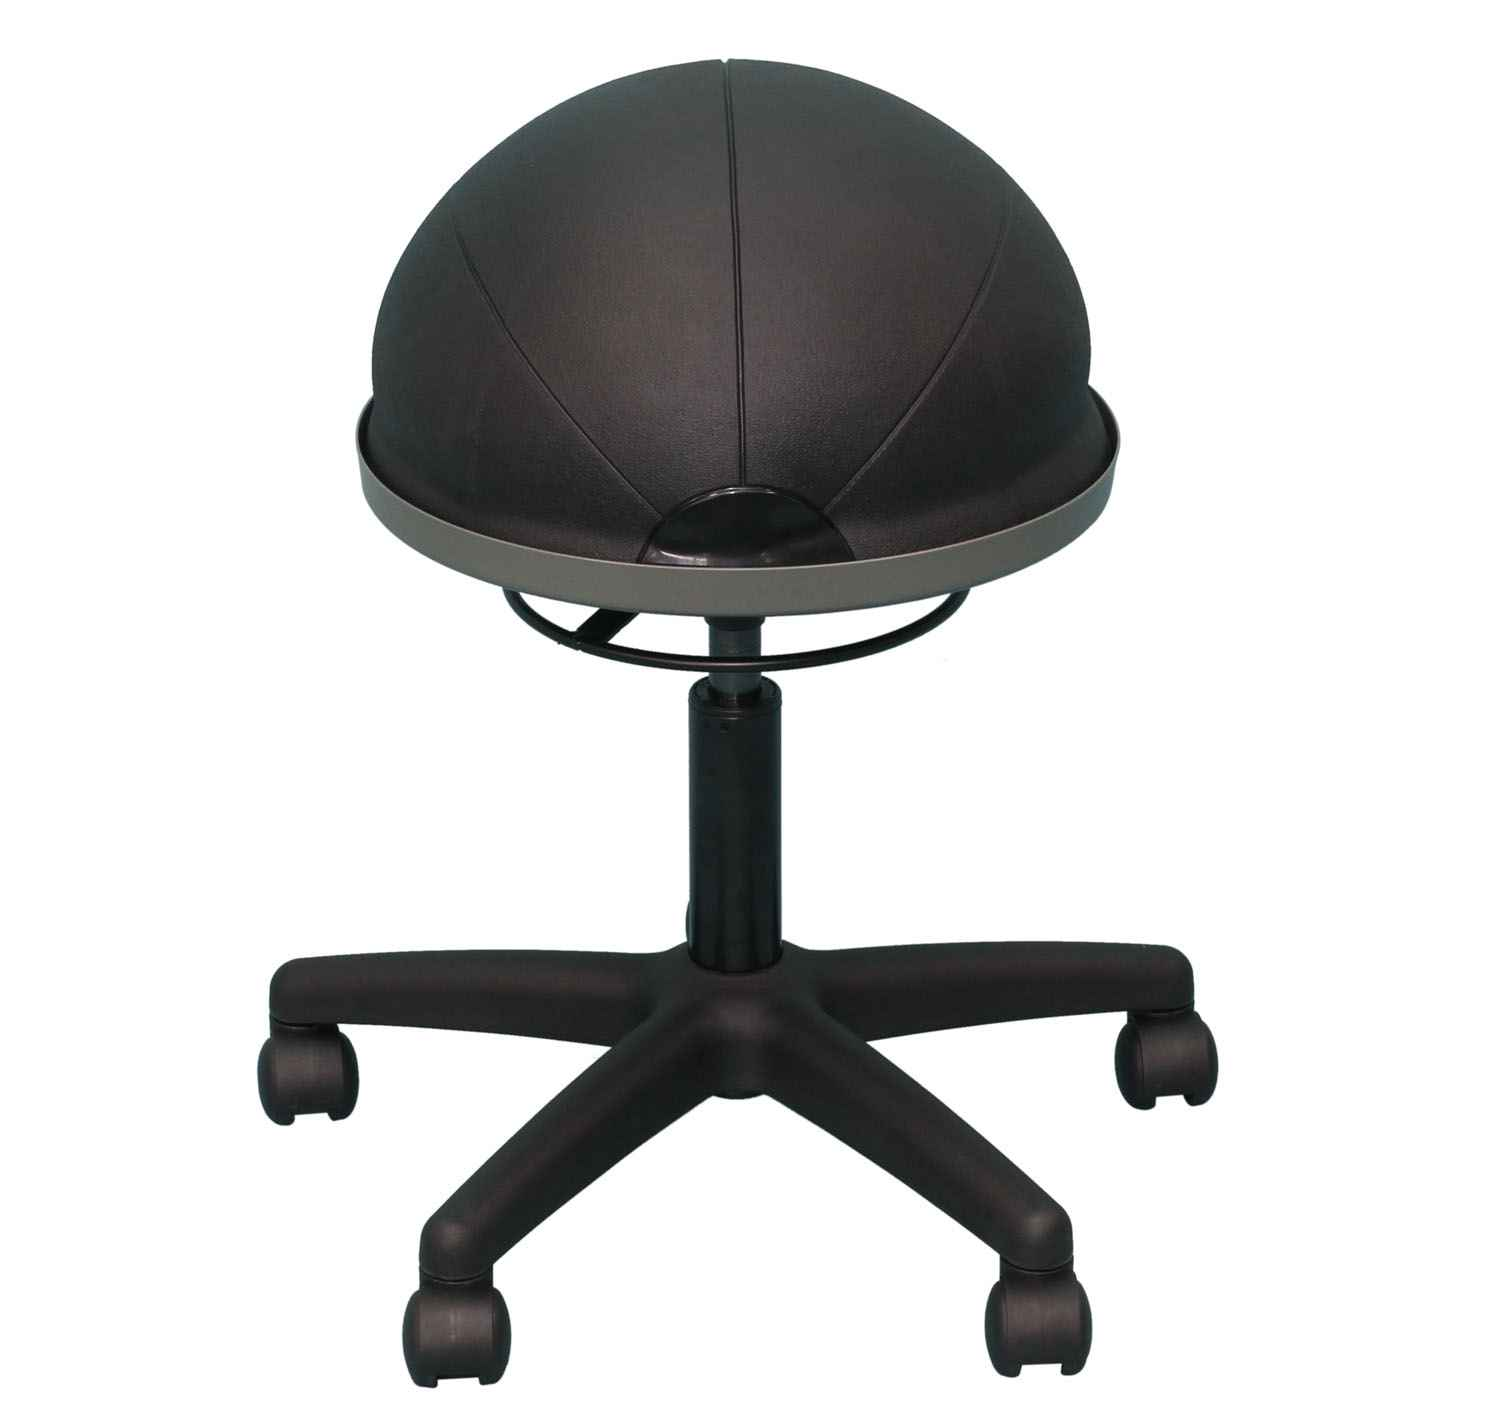 Office ergonomic swivel ball chair